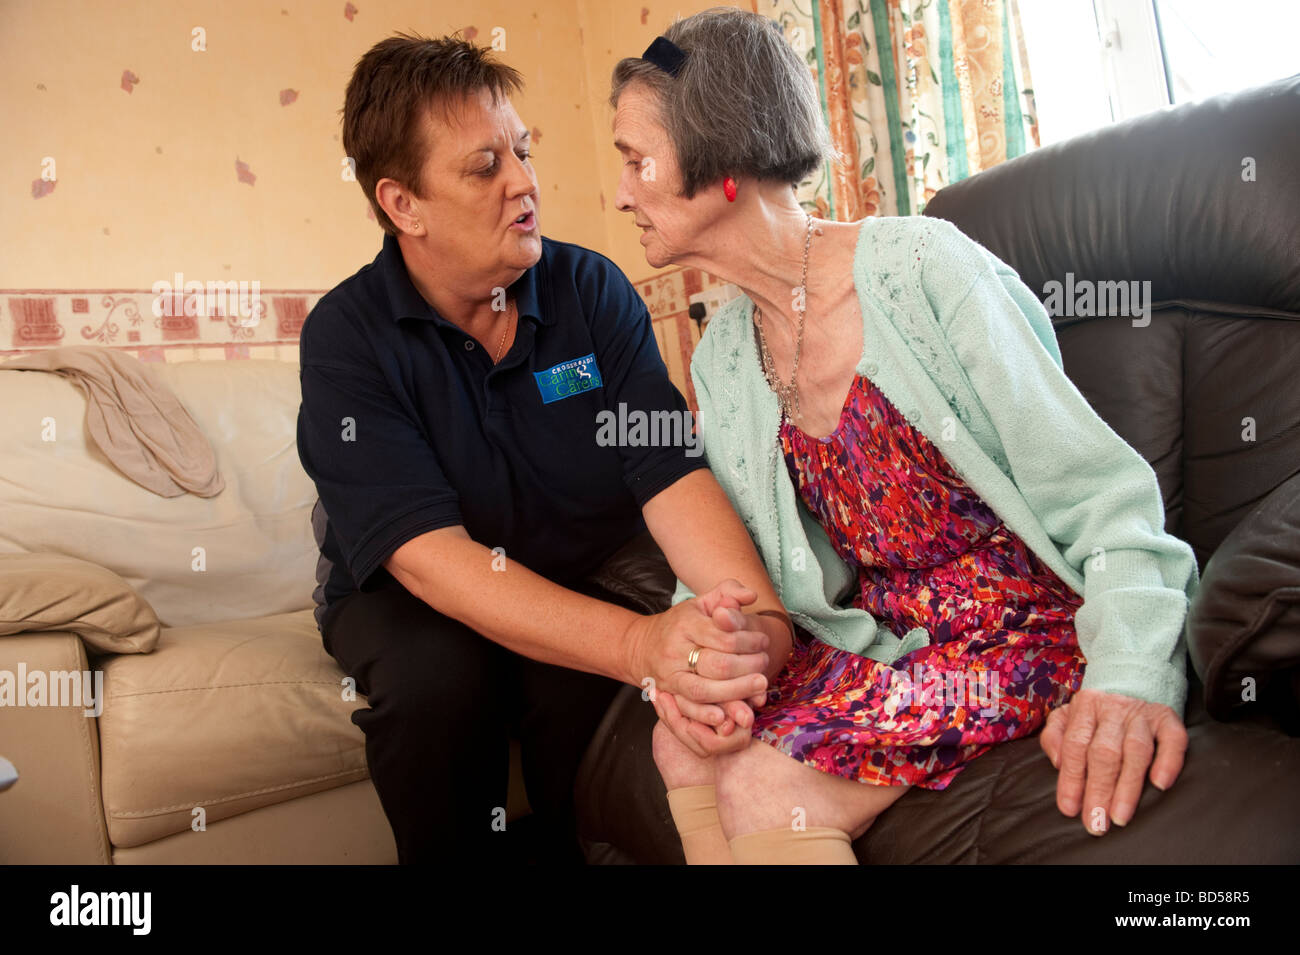 Care worker helps a woman suffering from Alzheimer's disease in her  home - Stock Image